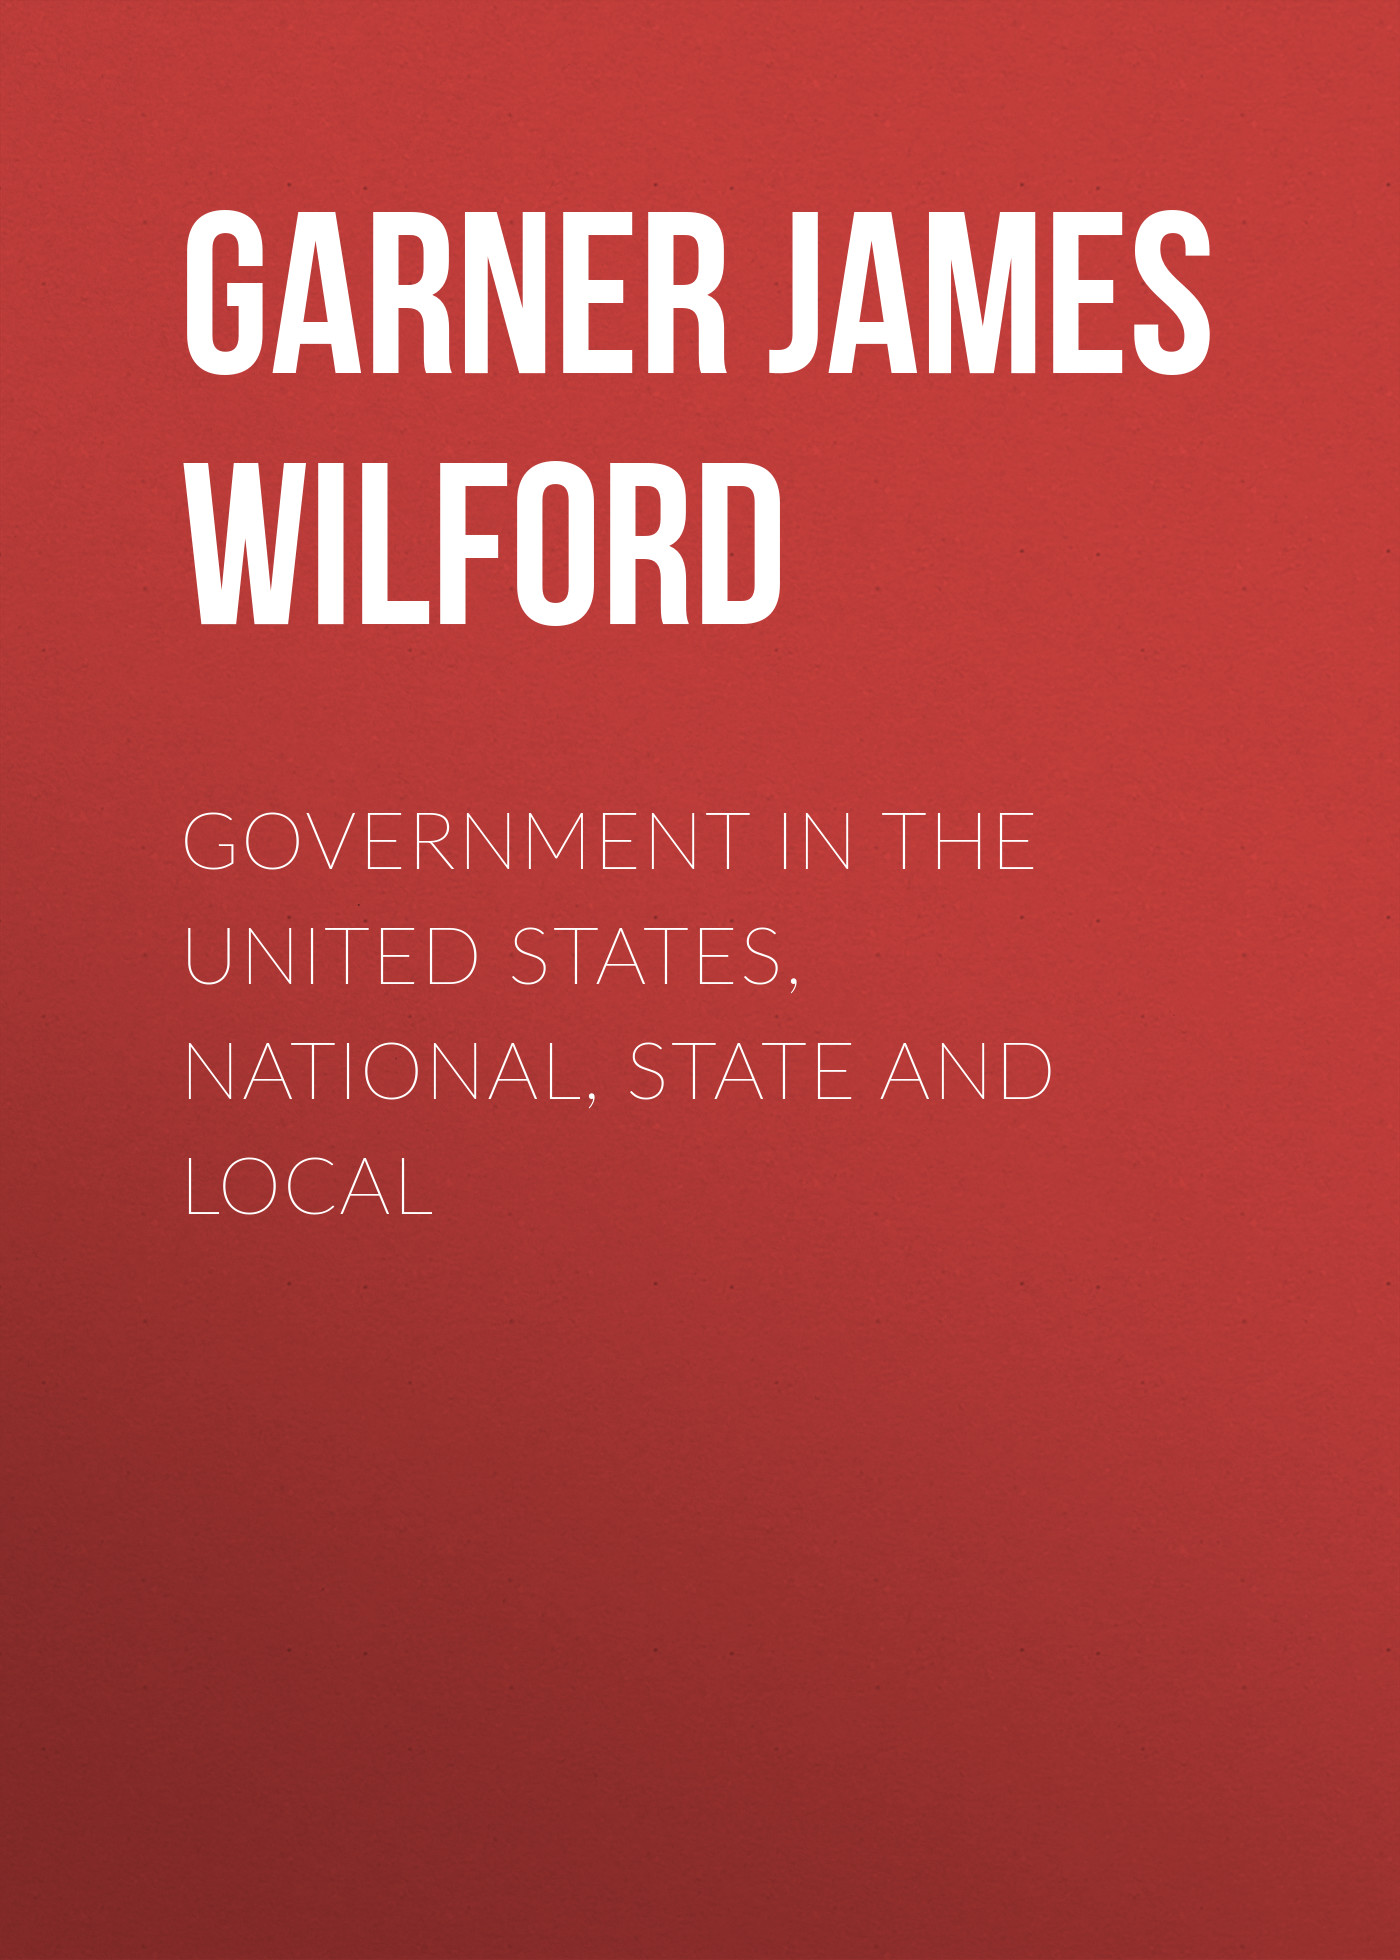 Garner James Wilford Government in the United States, National, State and Local twentieth century successful americans local and national